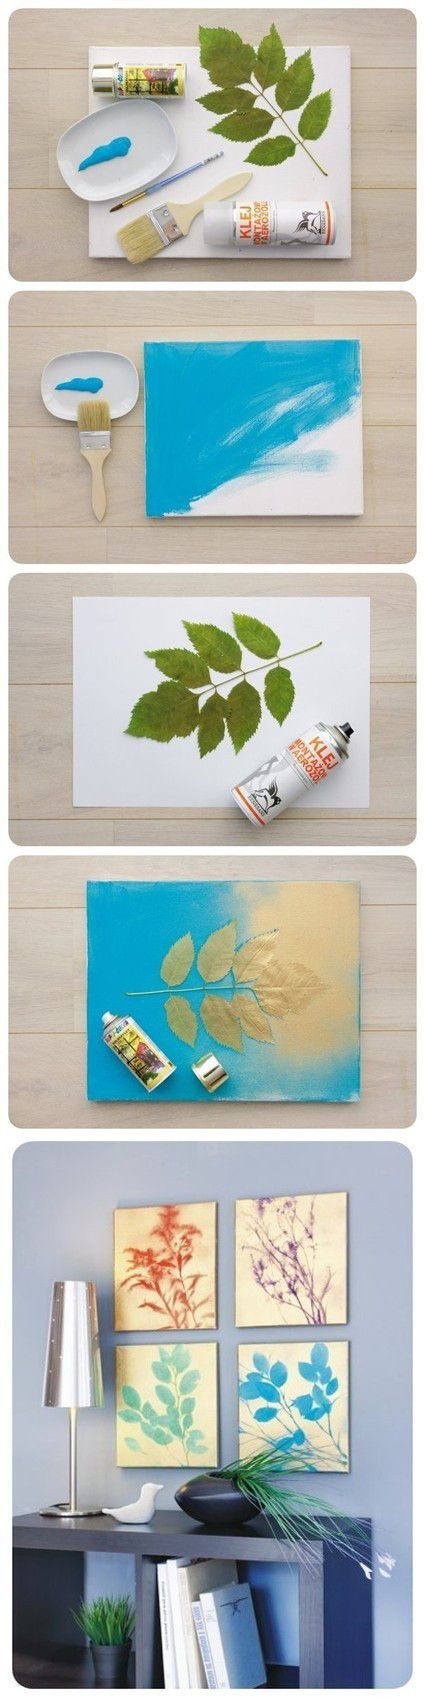 I would use silver spray paint!  Awesome wall canvas' for easy home decor